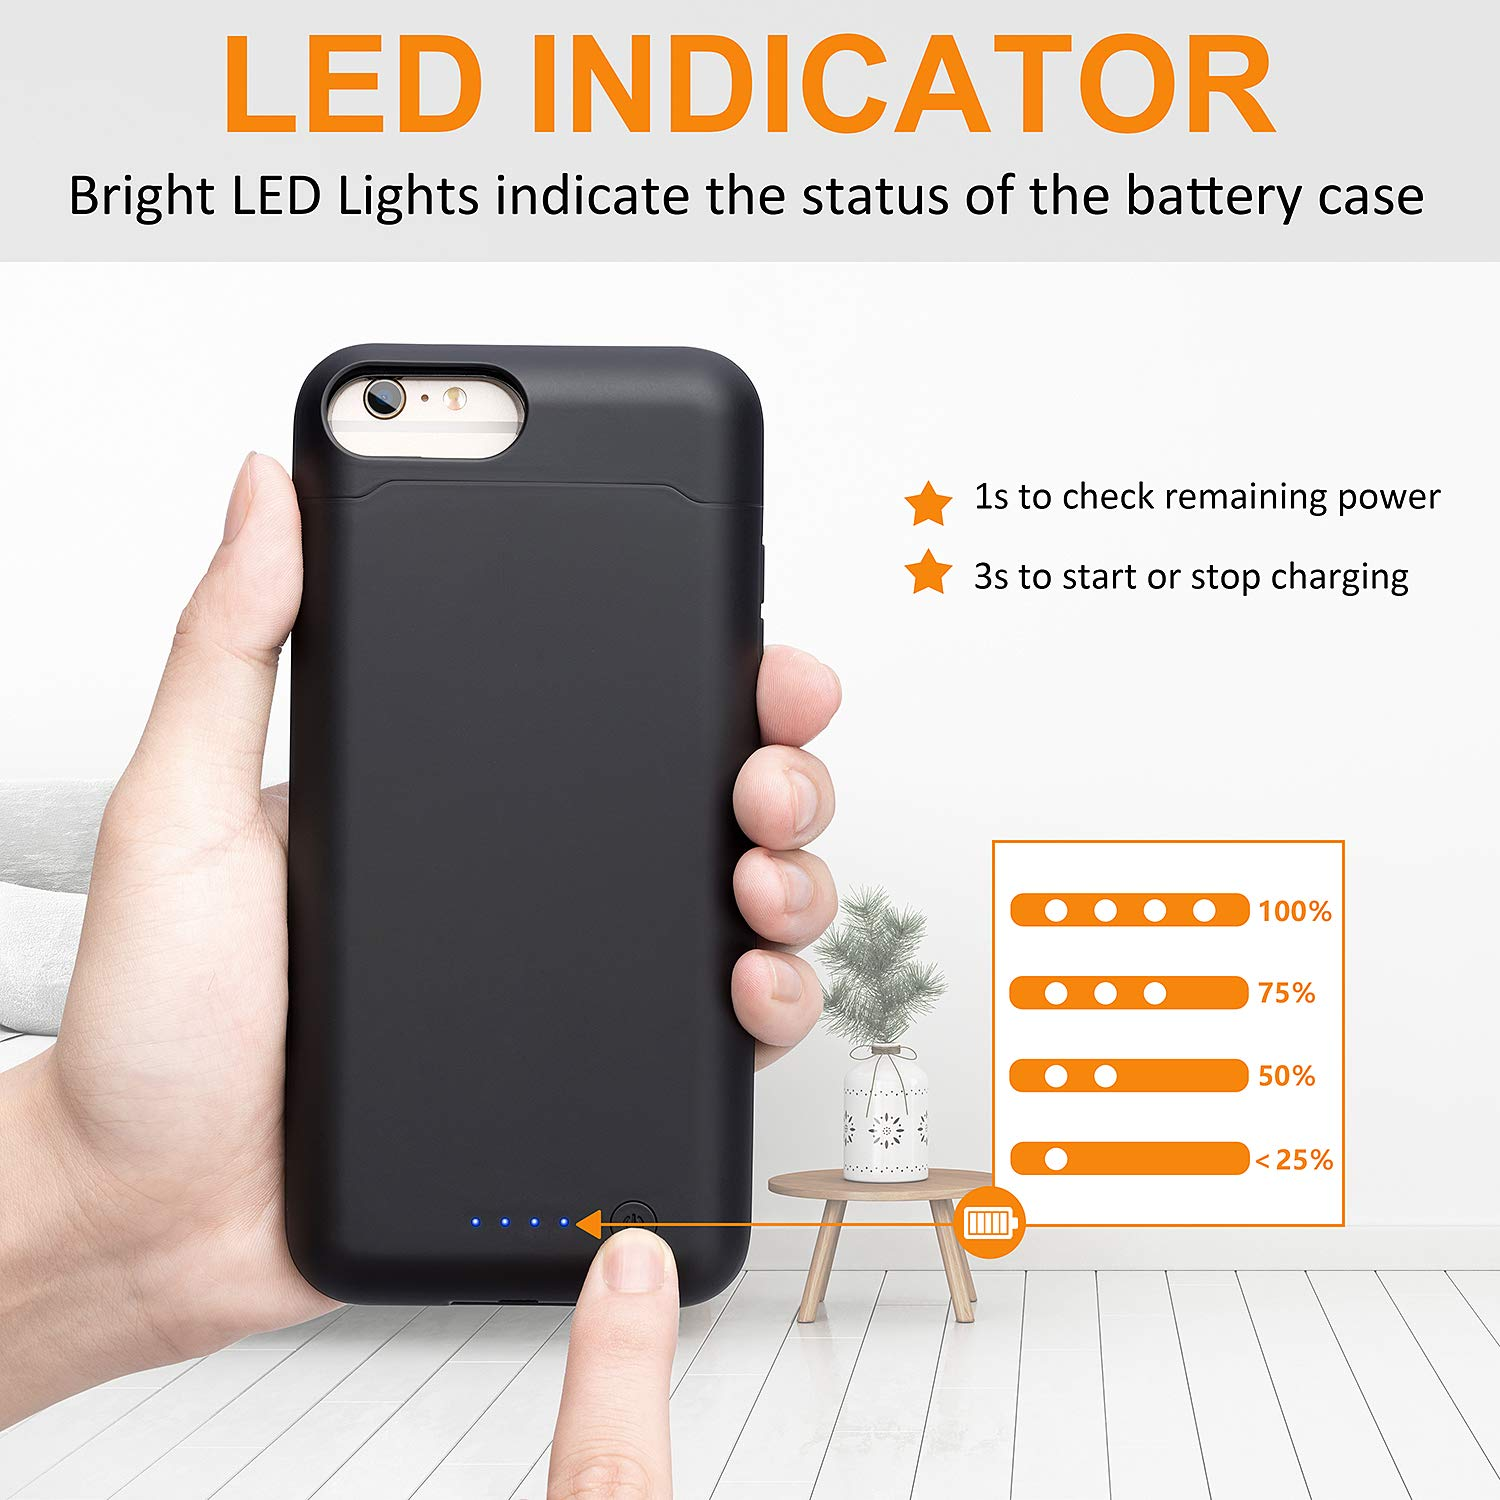 LCLEBM Battery Case for iPhone 6 Plus/ 6s Plus (5.5 inch), 8500mAh High Capacity Extended Battery Charger Case, Portable Protective Charging Case Compatible with iPhone 6 Plus/6s Plus - Black by LCLEBM (Image #6)